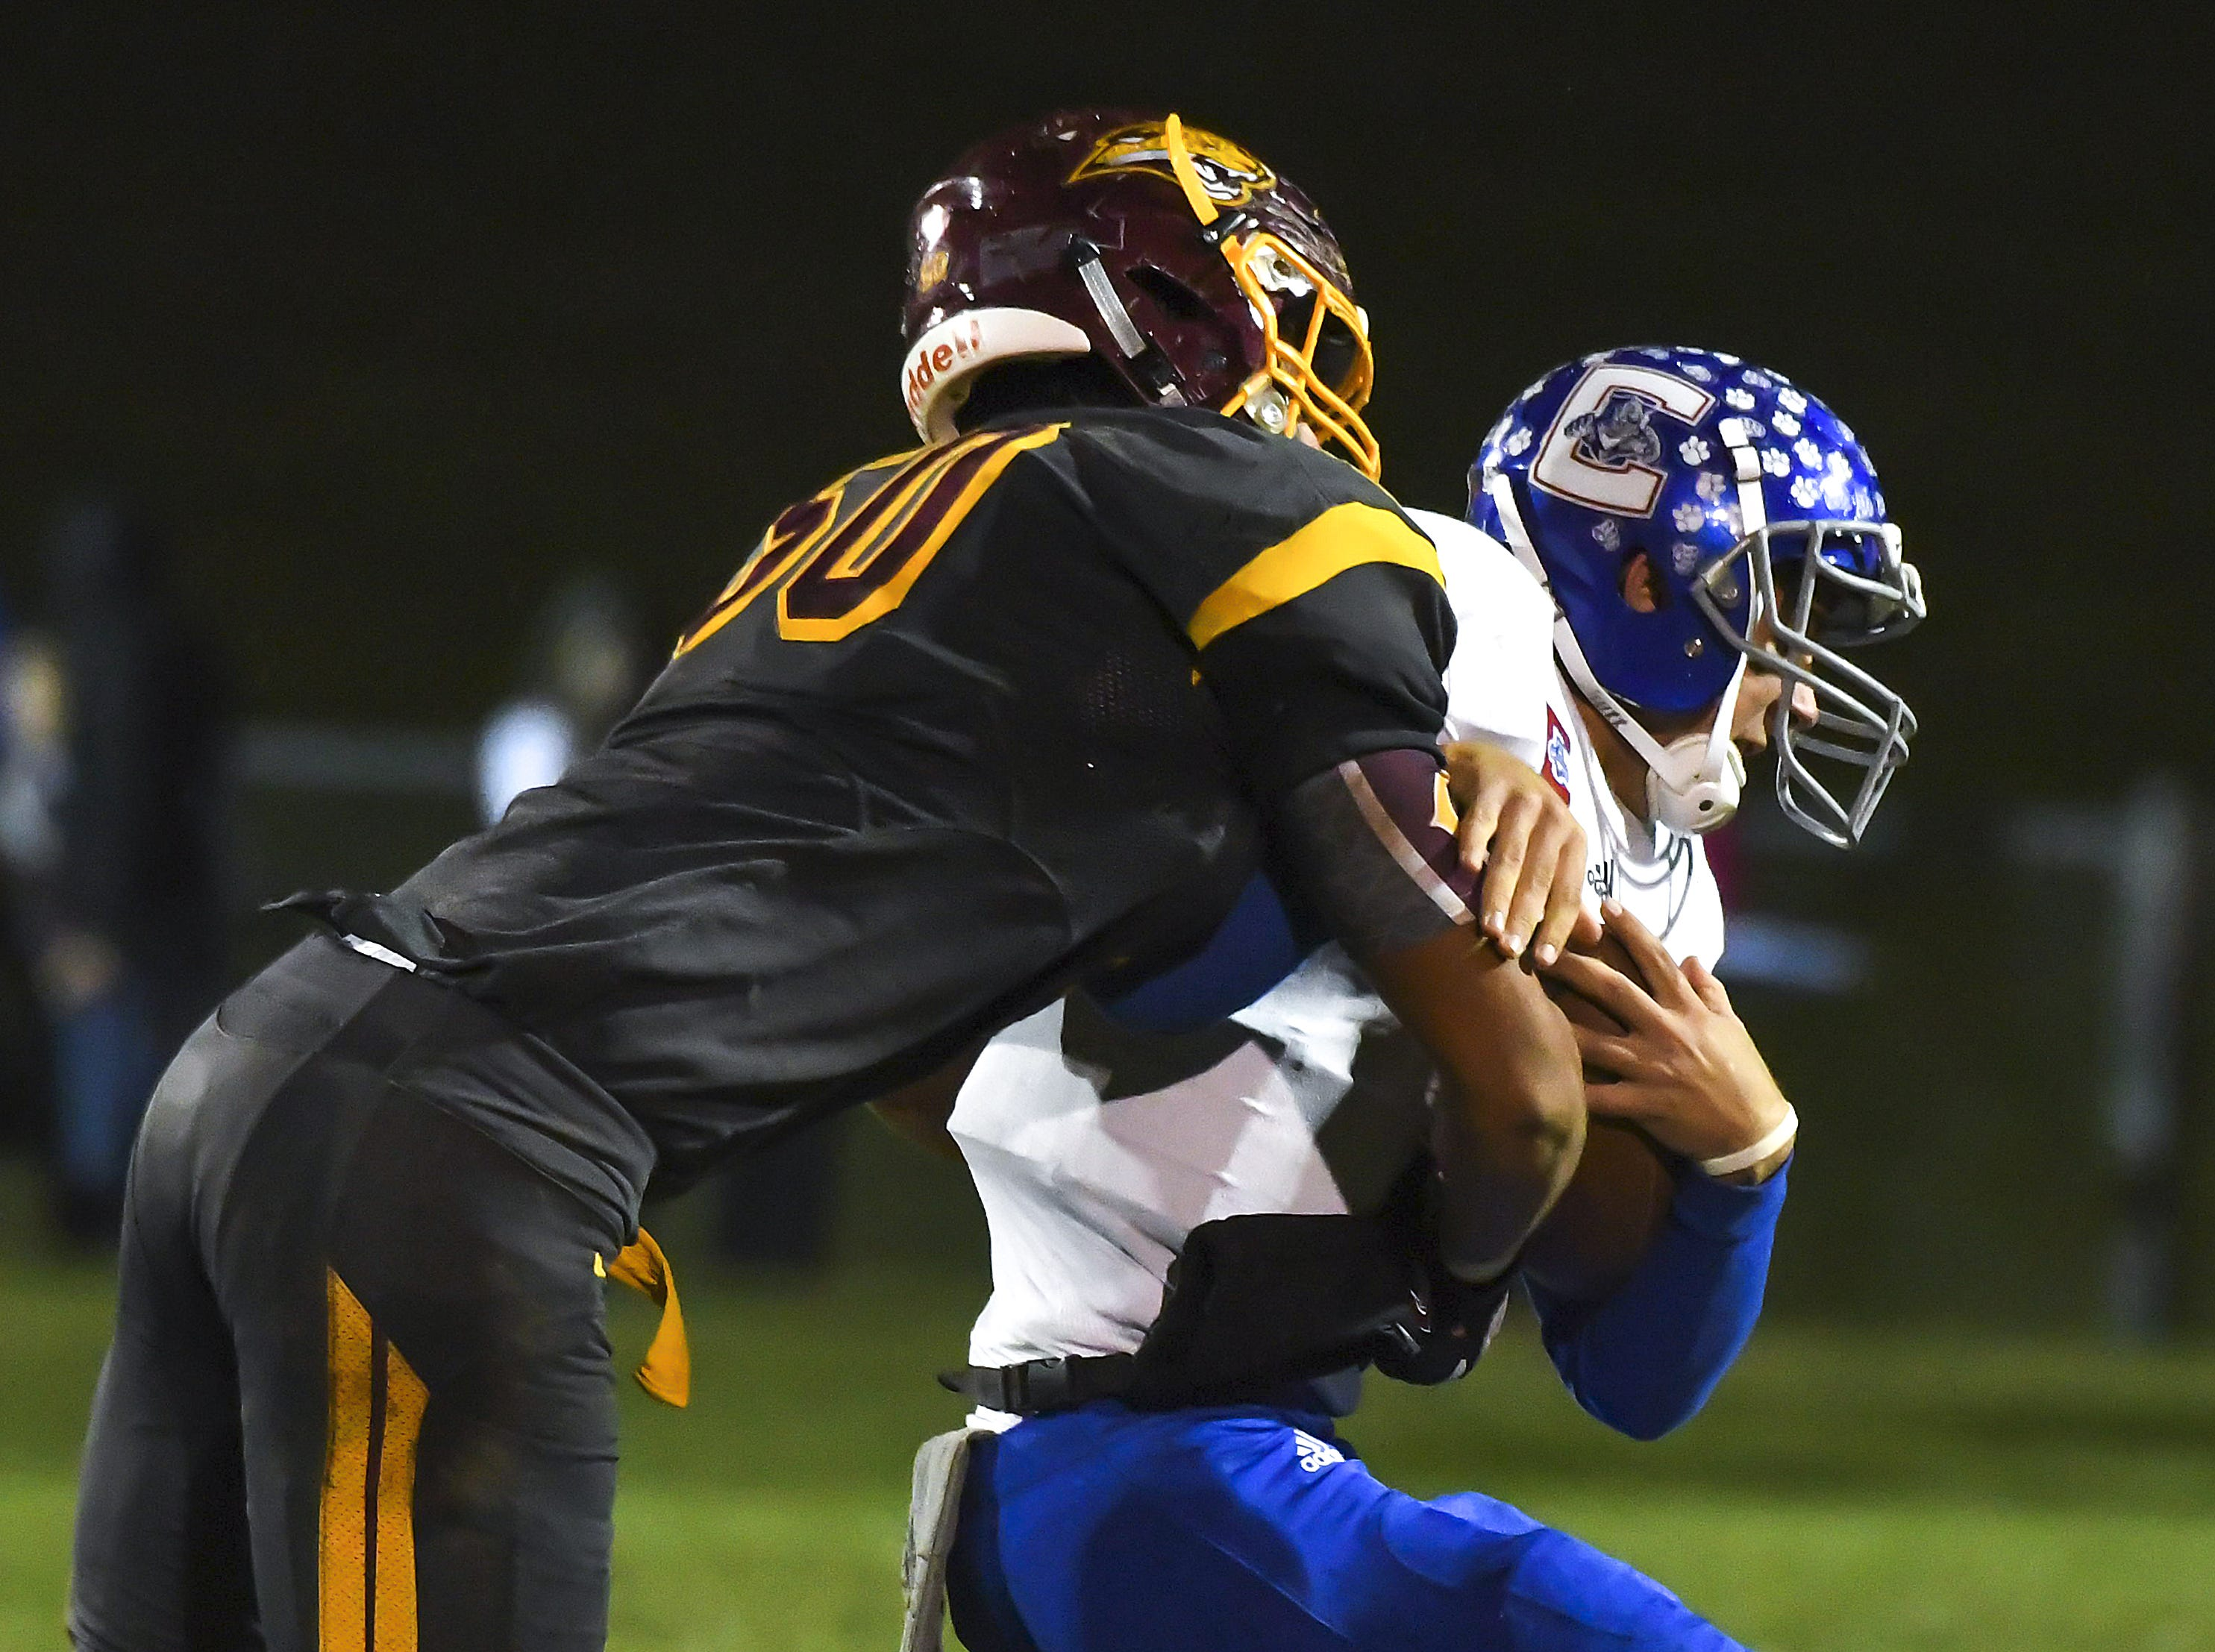 Cooper defender Michael Attabary sacks Conner quarterback Jared Hicks in the Skyline Chili Crosstown Showdown at Cooper High School, Union, KY, Friday Oct. 19, 2018